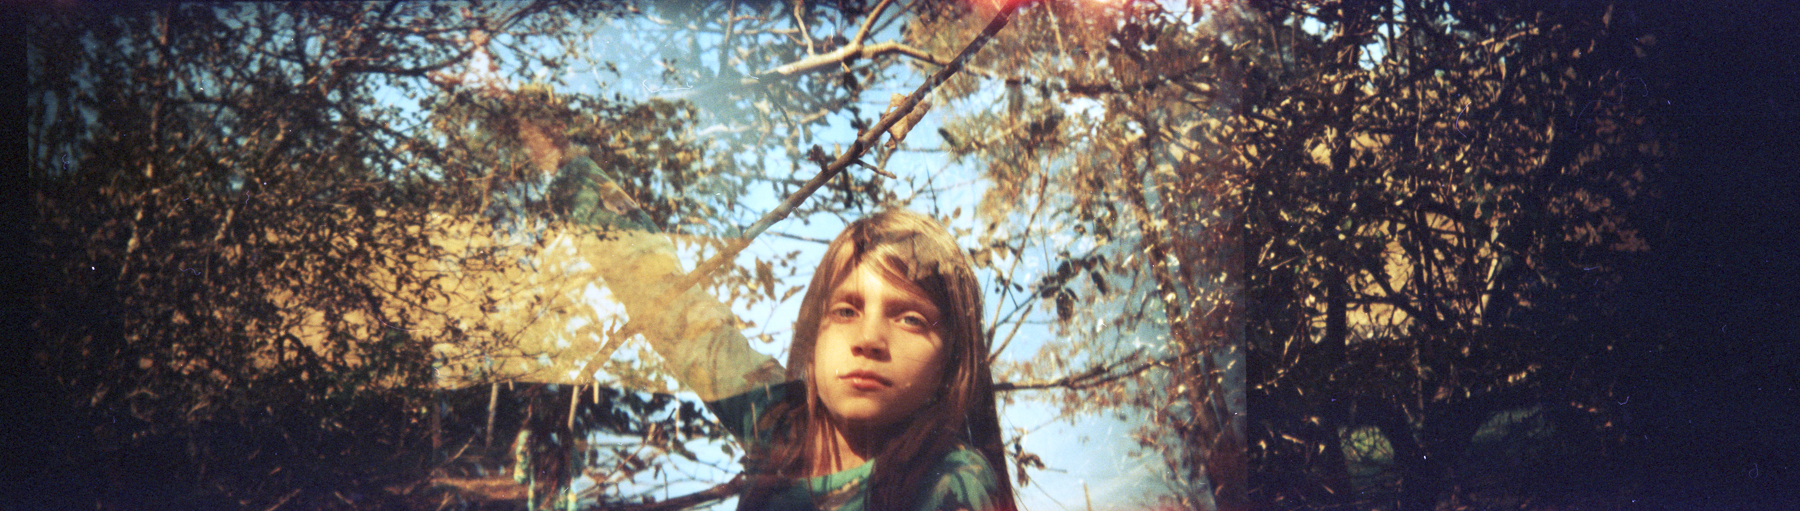 Jocelyn Mathewes | In the Trees | Holga 135